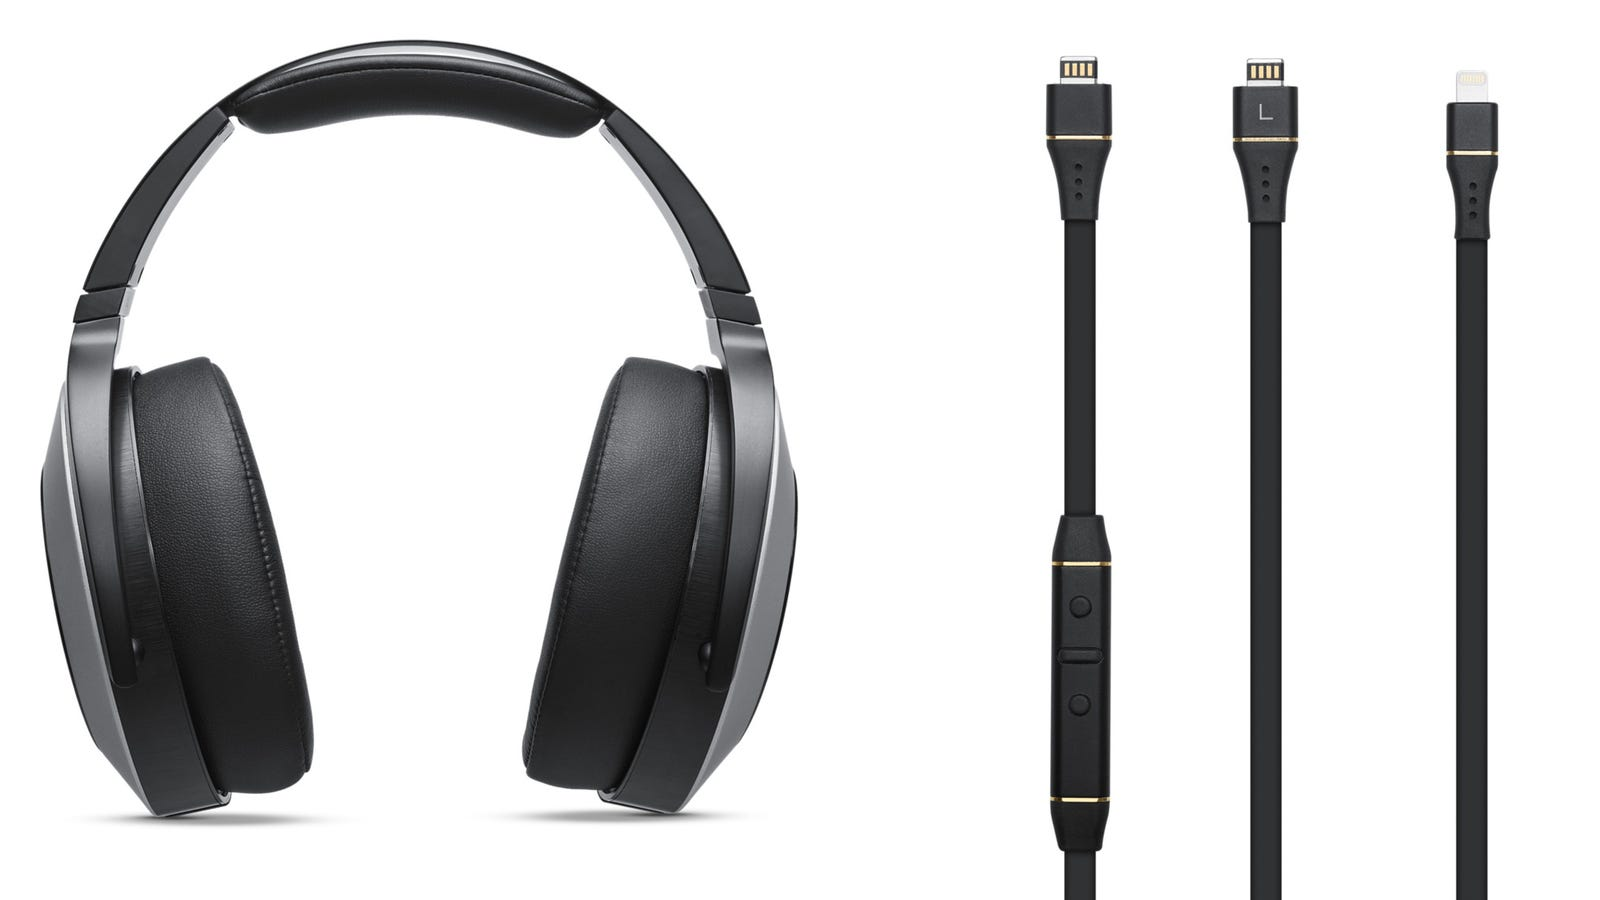 headphones wireless kit - These $800 Lightning Headphones Make Your iPhone's 3.5mm Jack Redundant